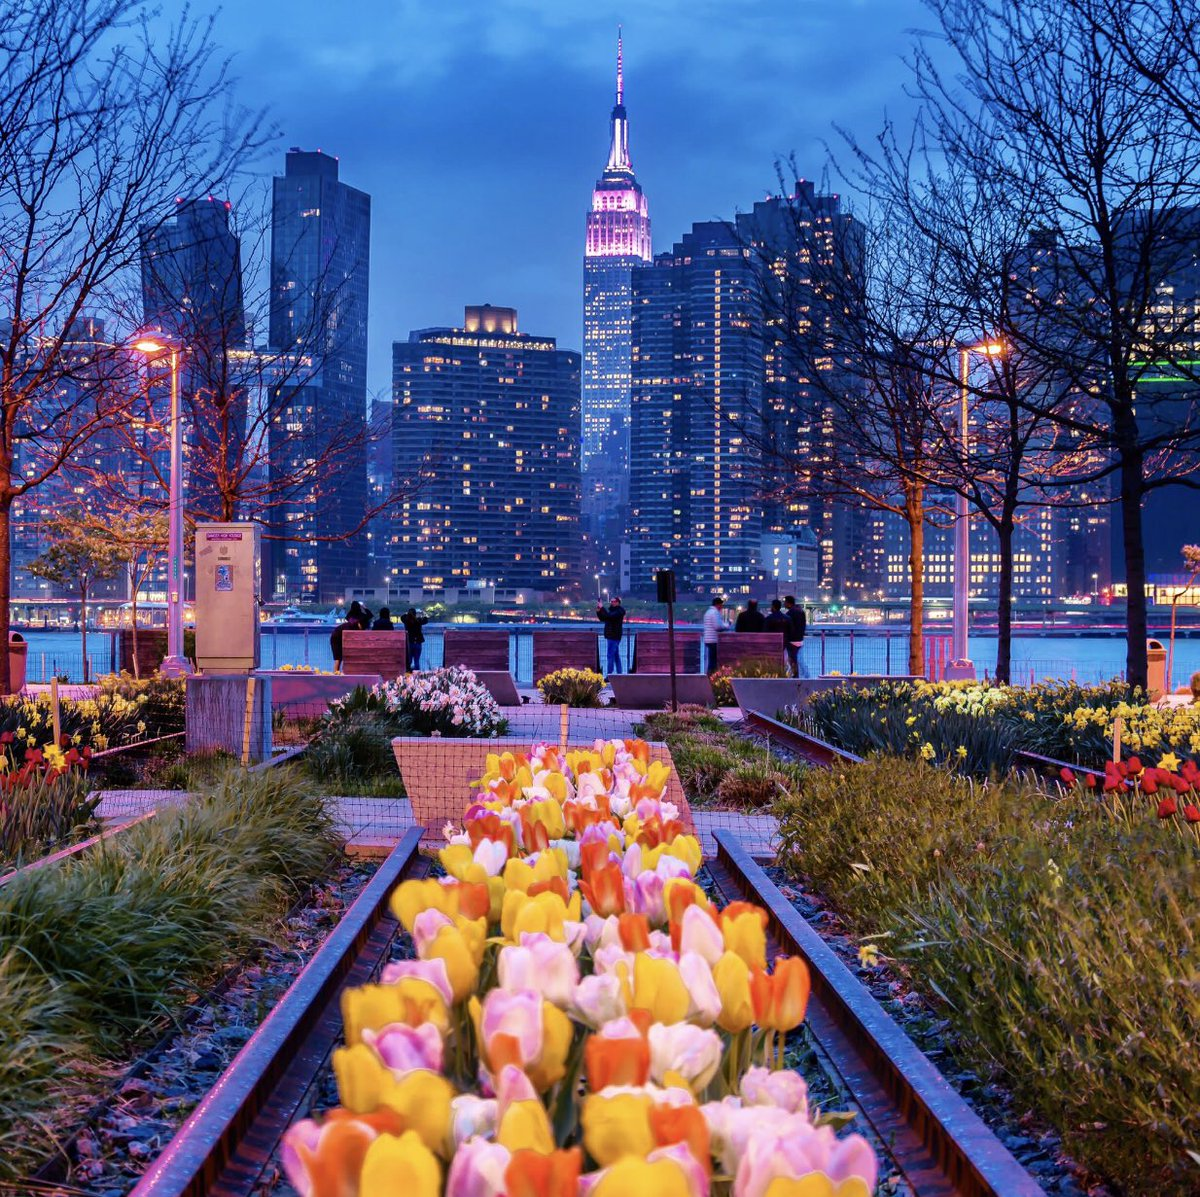 test Twitter Media - Here Hunters Point South Park, Long Island City, Queens, New York & @EmpireStateBldg photo by @nyclovesnyc ~ a beautiful spring sight https://t.co/3Bri9bwBLb